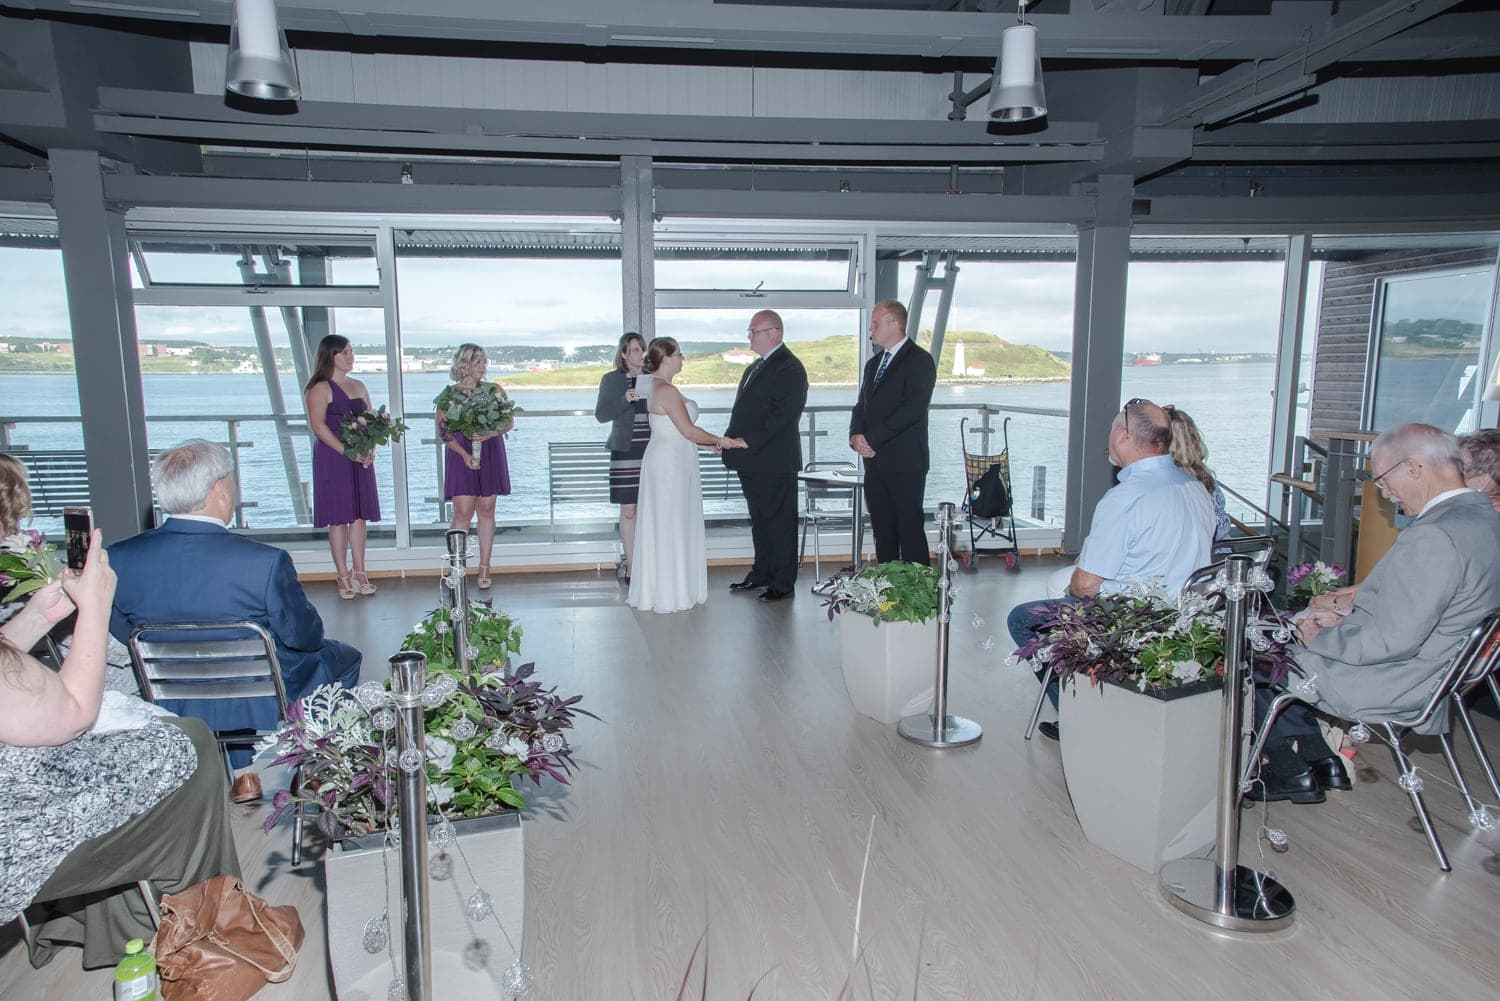 the wedding ceremony on the 2nd floor of the Halifax Seaport Farmer's Market